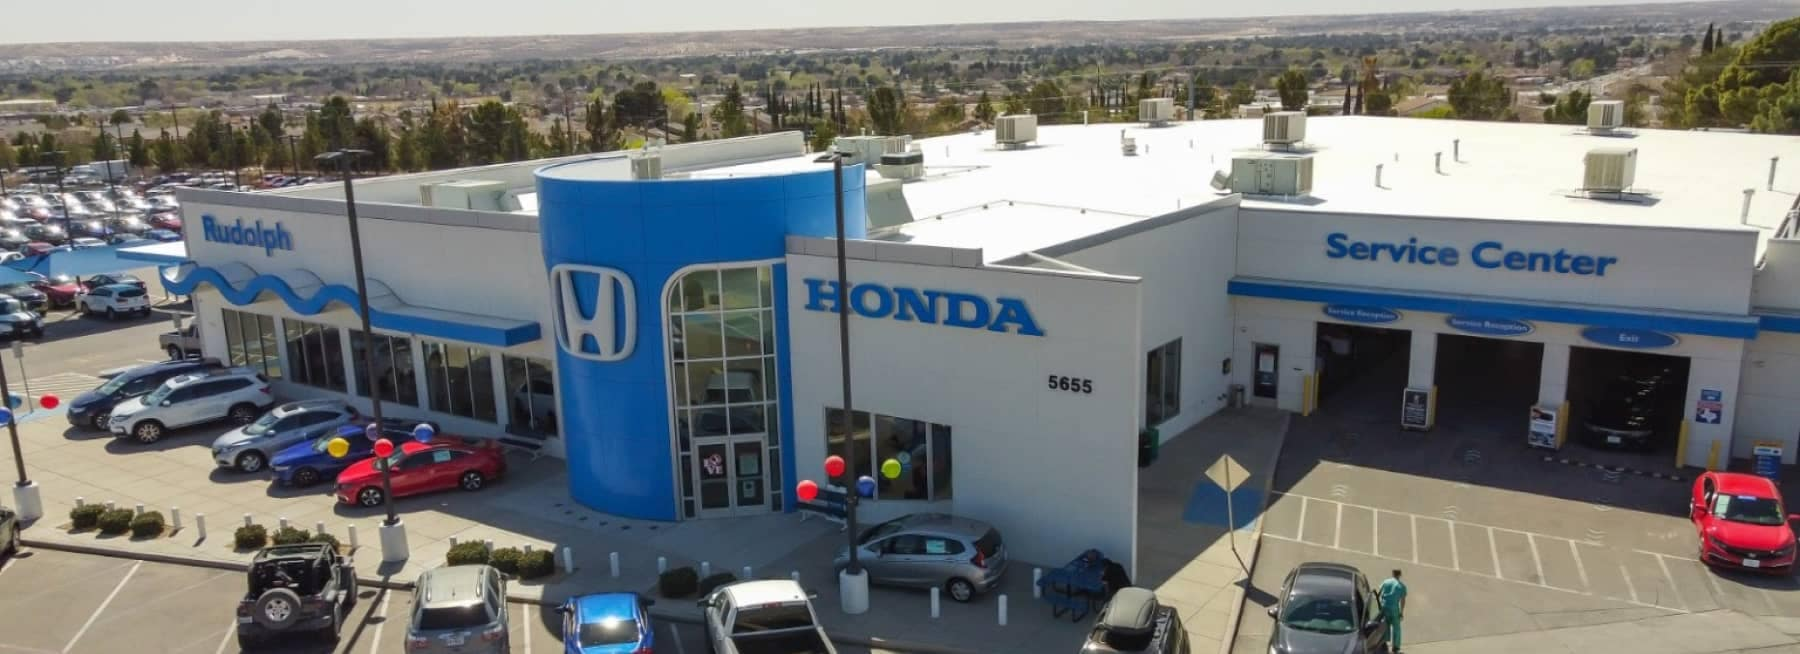 An exterior shot of a Honda dealership from aerial view